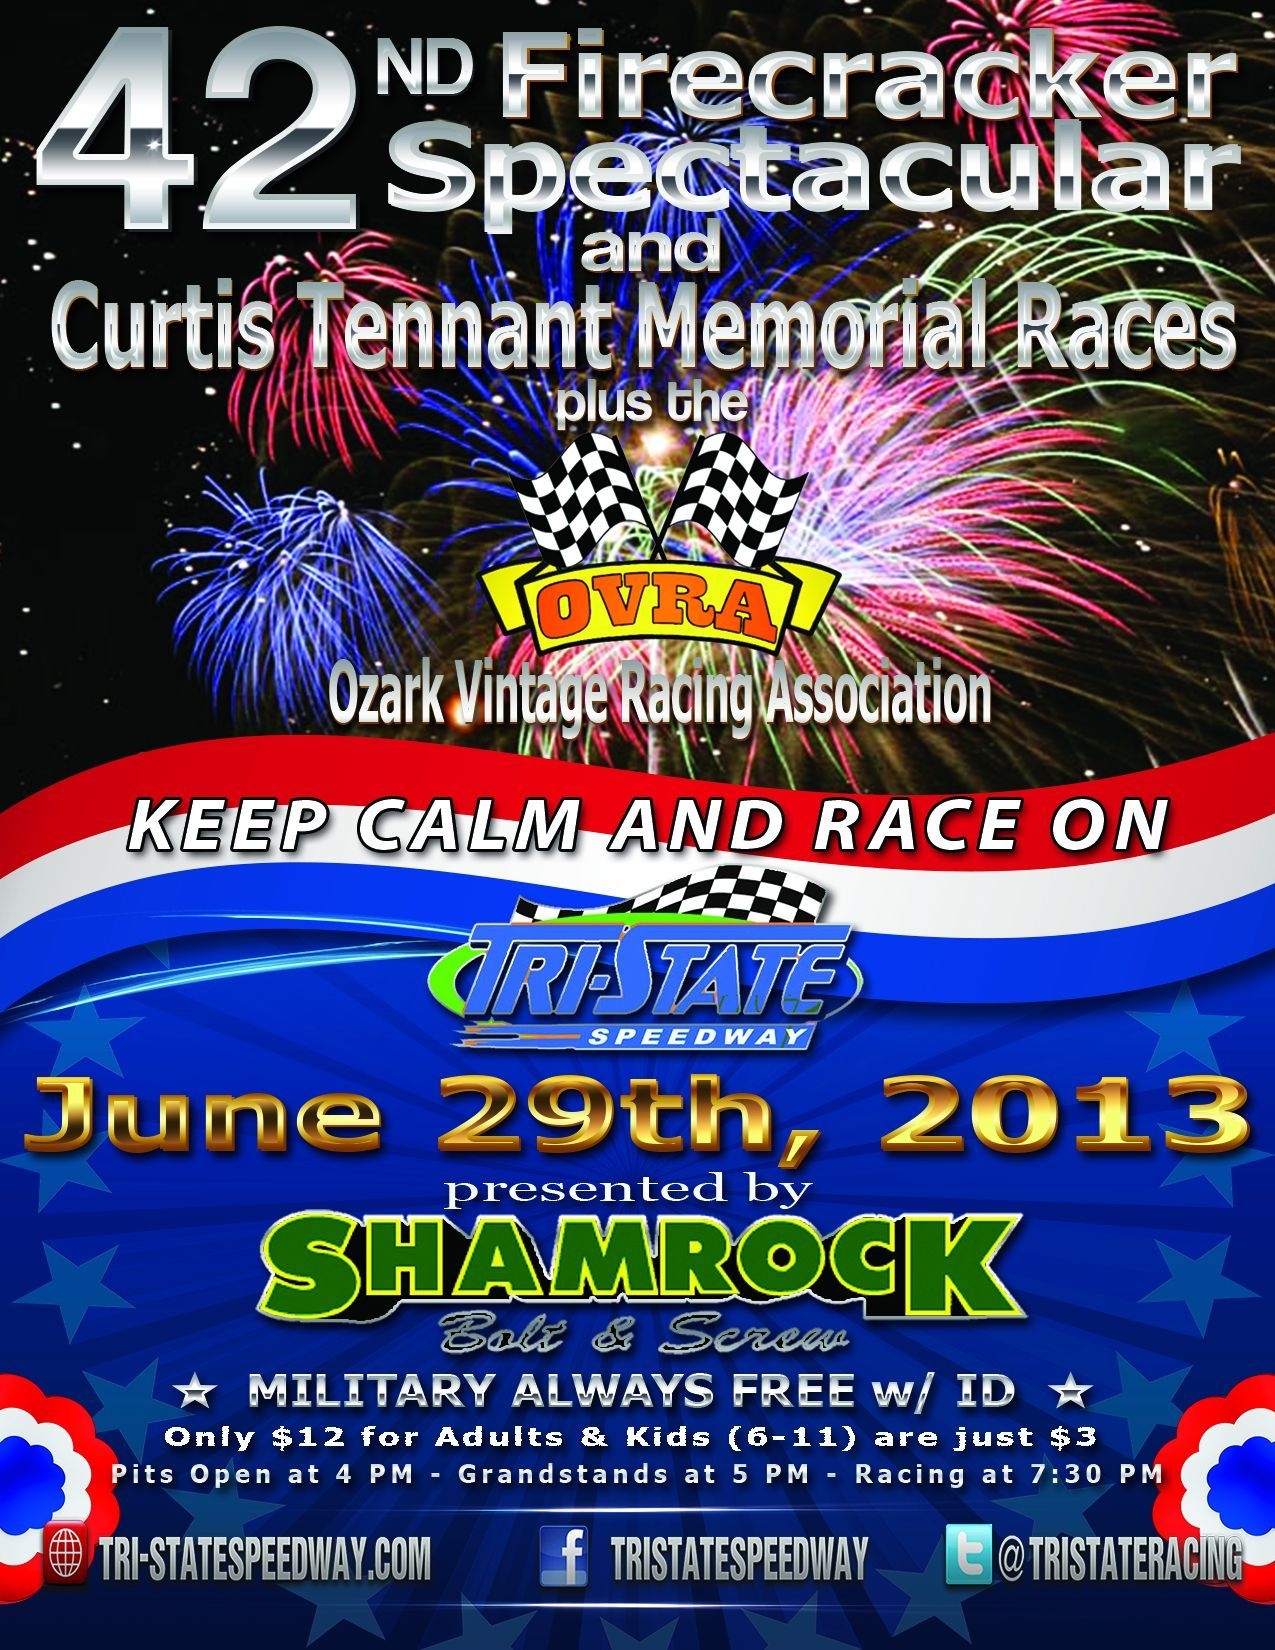 42nd Annual Firecracker Spectacular